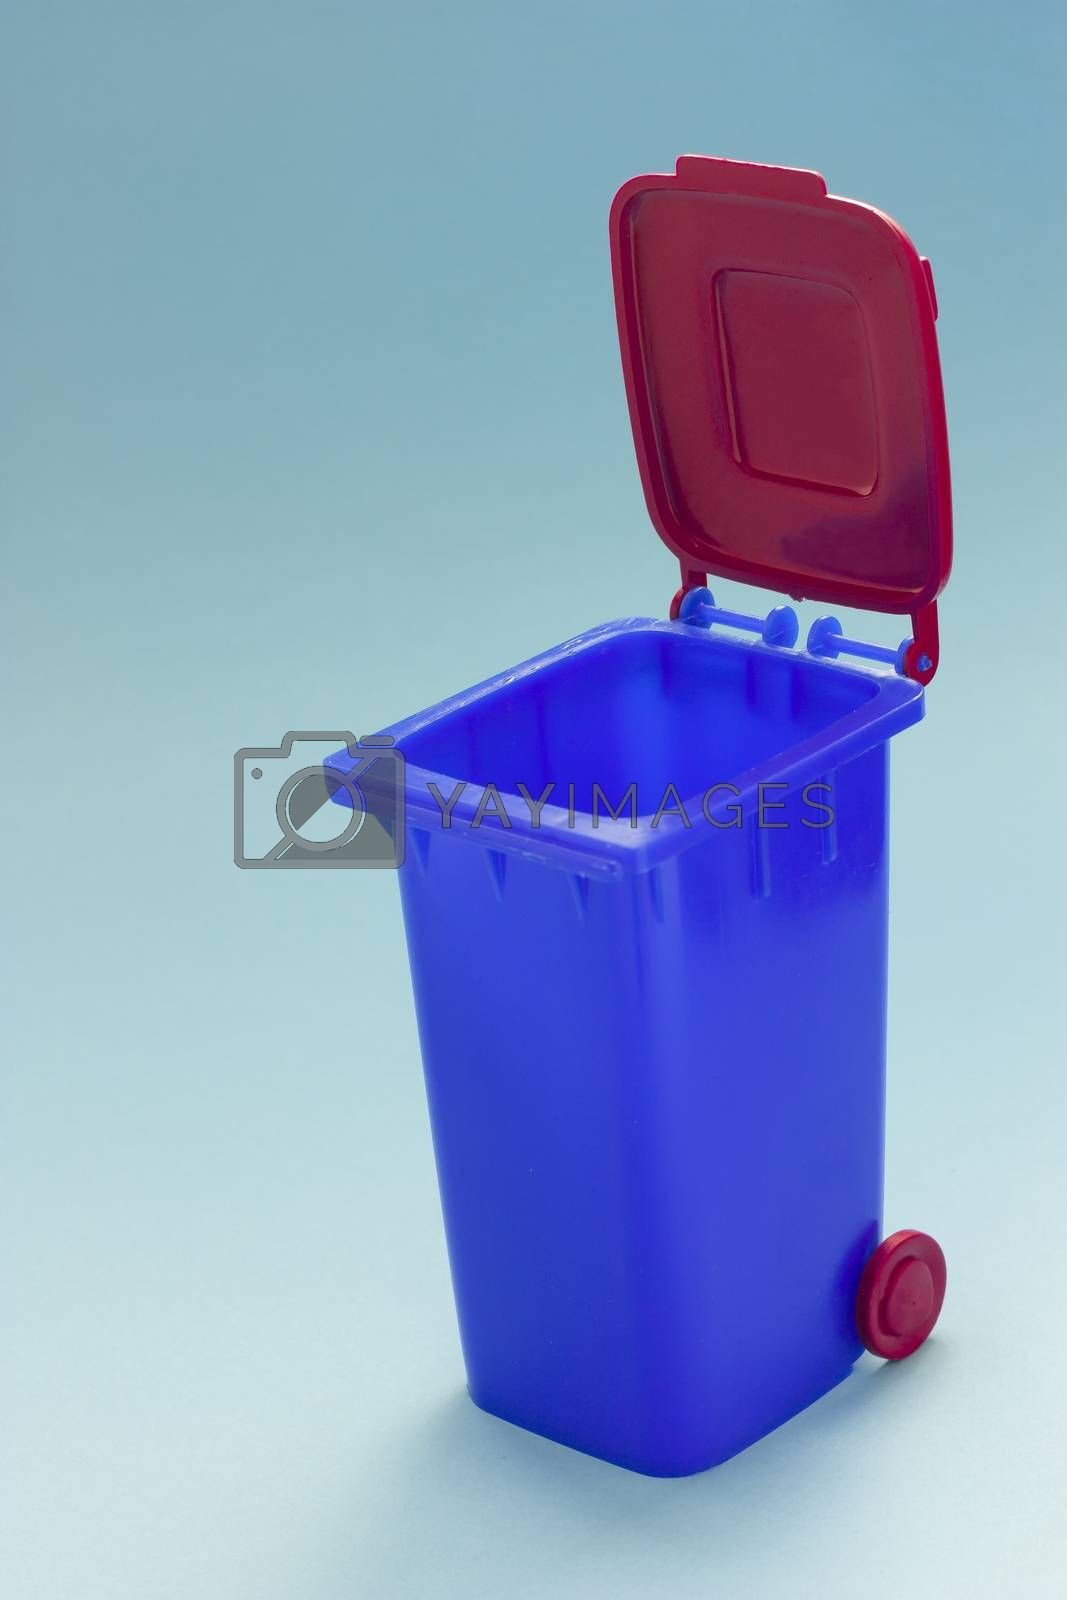 Miniature of a Dumpster combined container pen blue and red